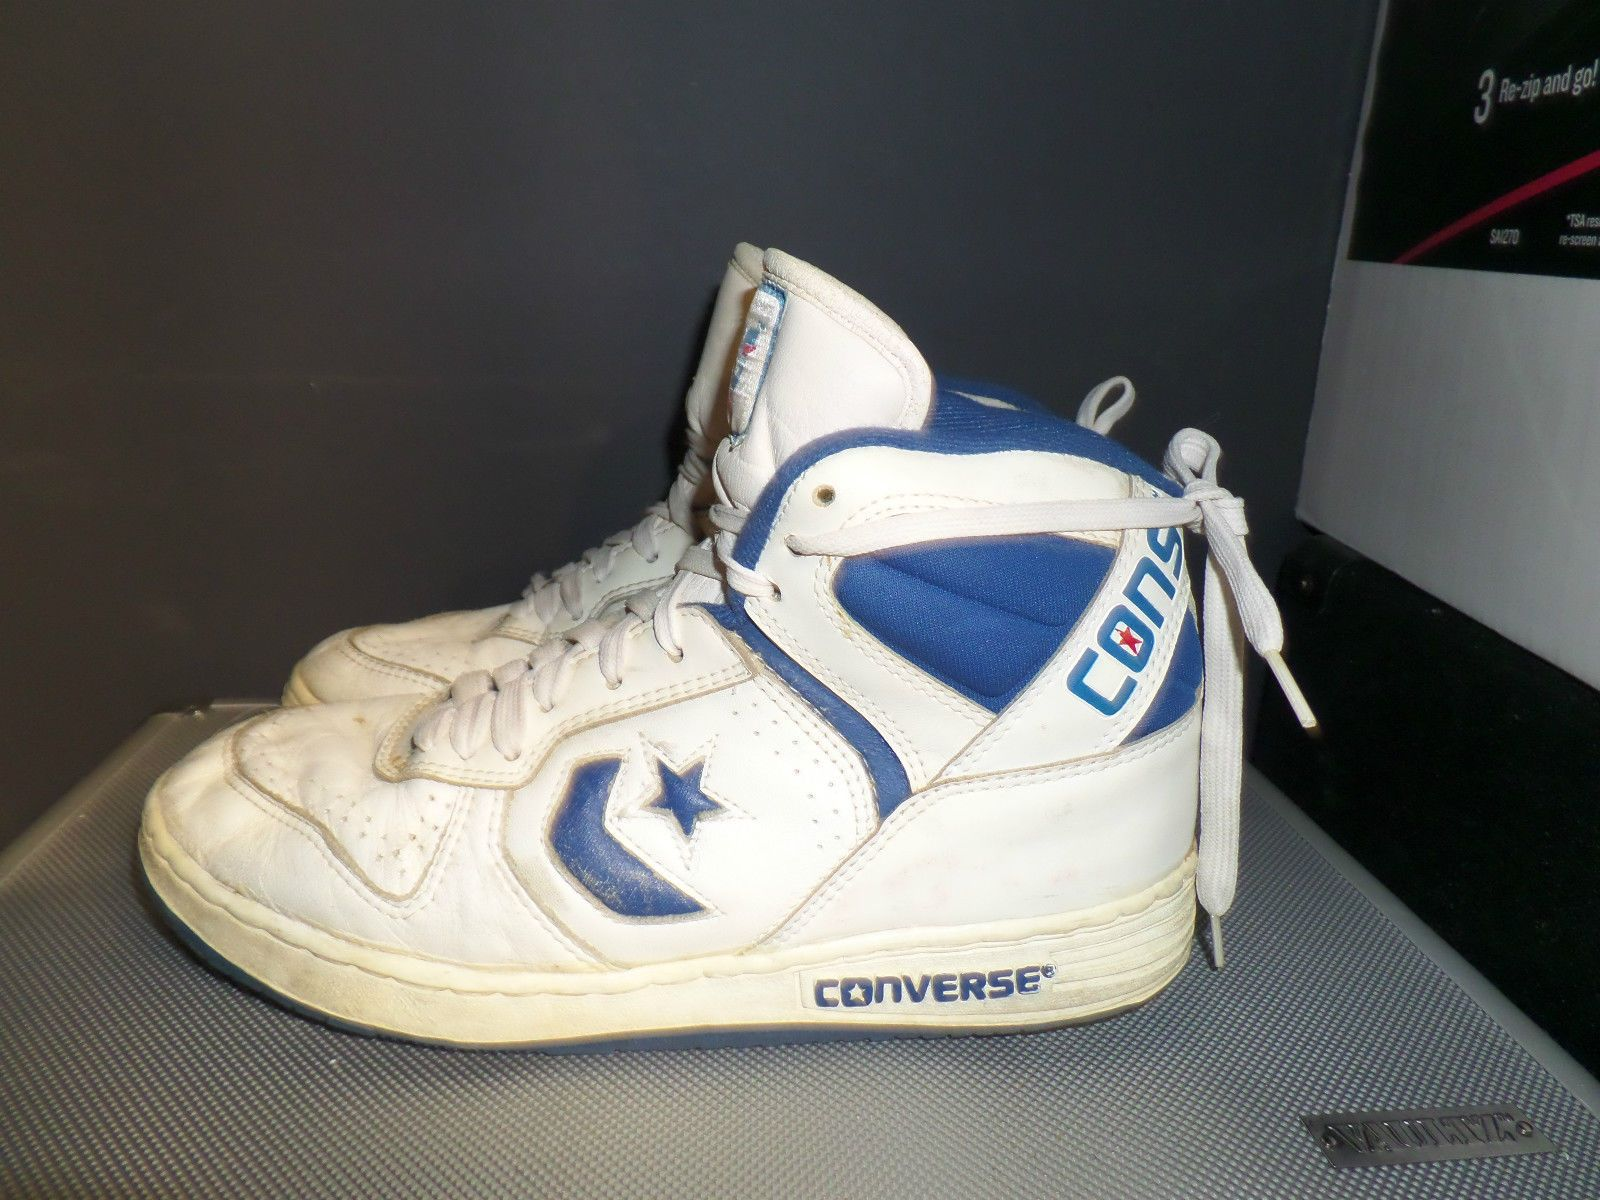 Walking dead converse shoes for sale - Converse Shoes Vintage Deadstock Cons 8 Leather White Royal Blue 80s Size 8 5 Ebay